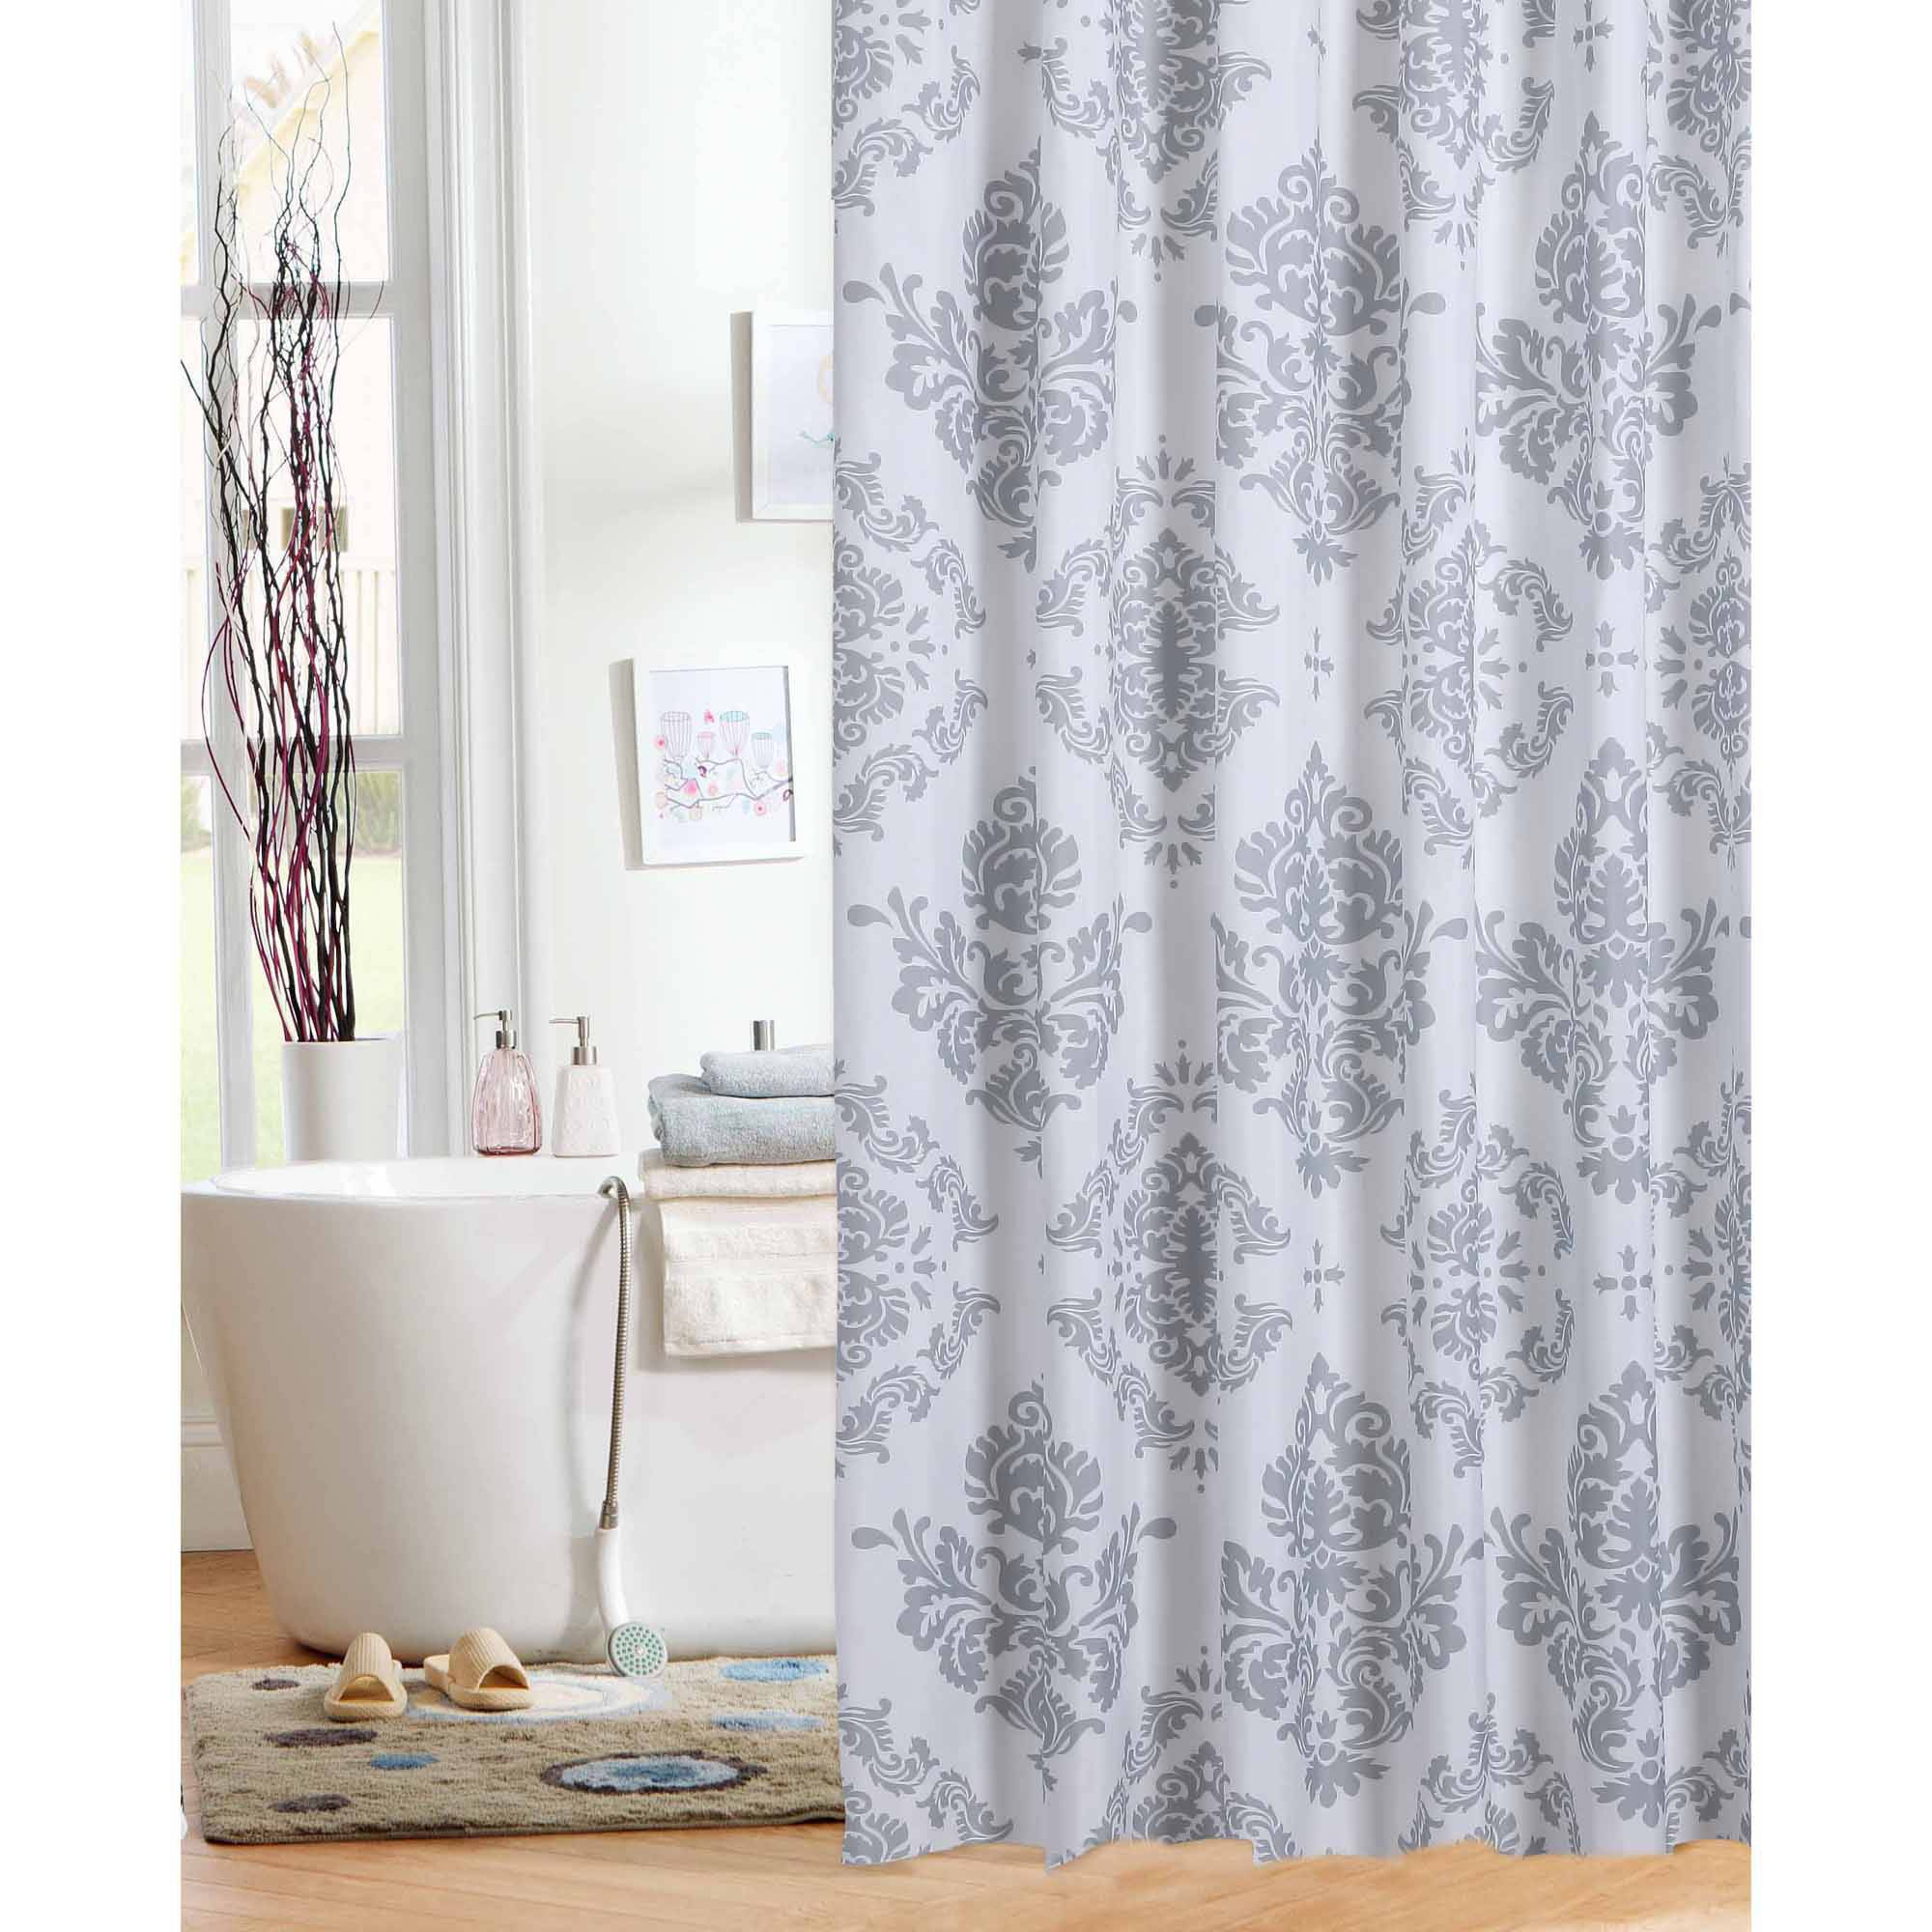 Mustache shower curtain - Mainstays Classic Noir Shower Curtain